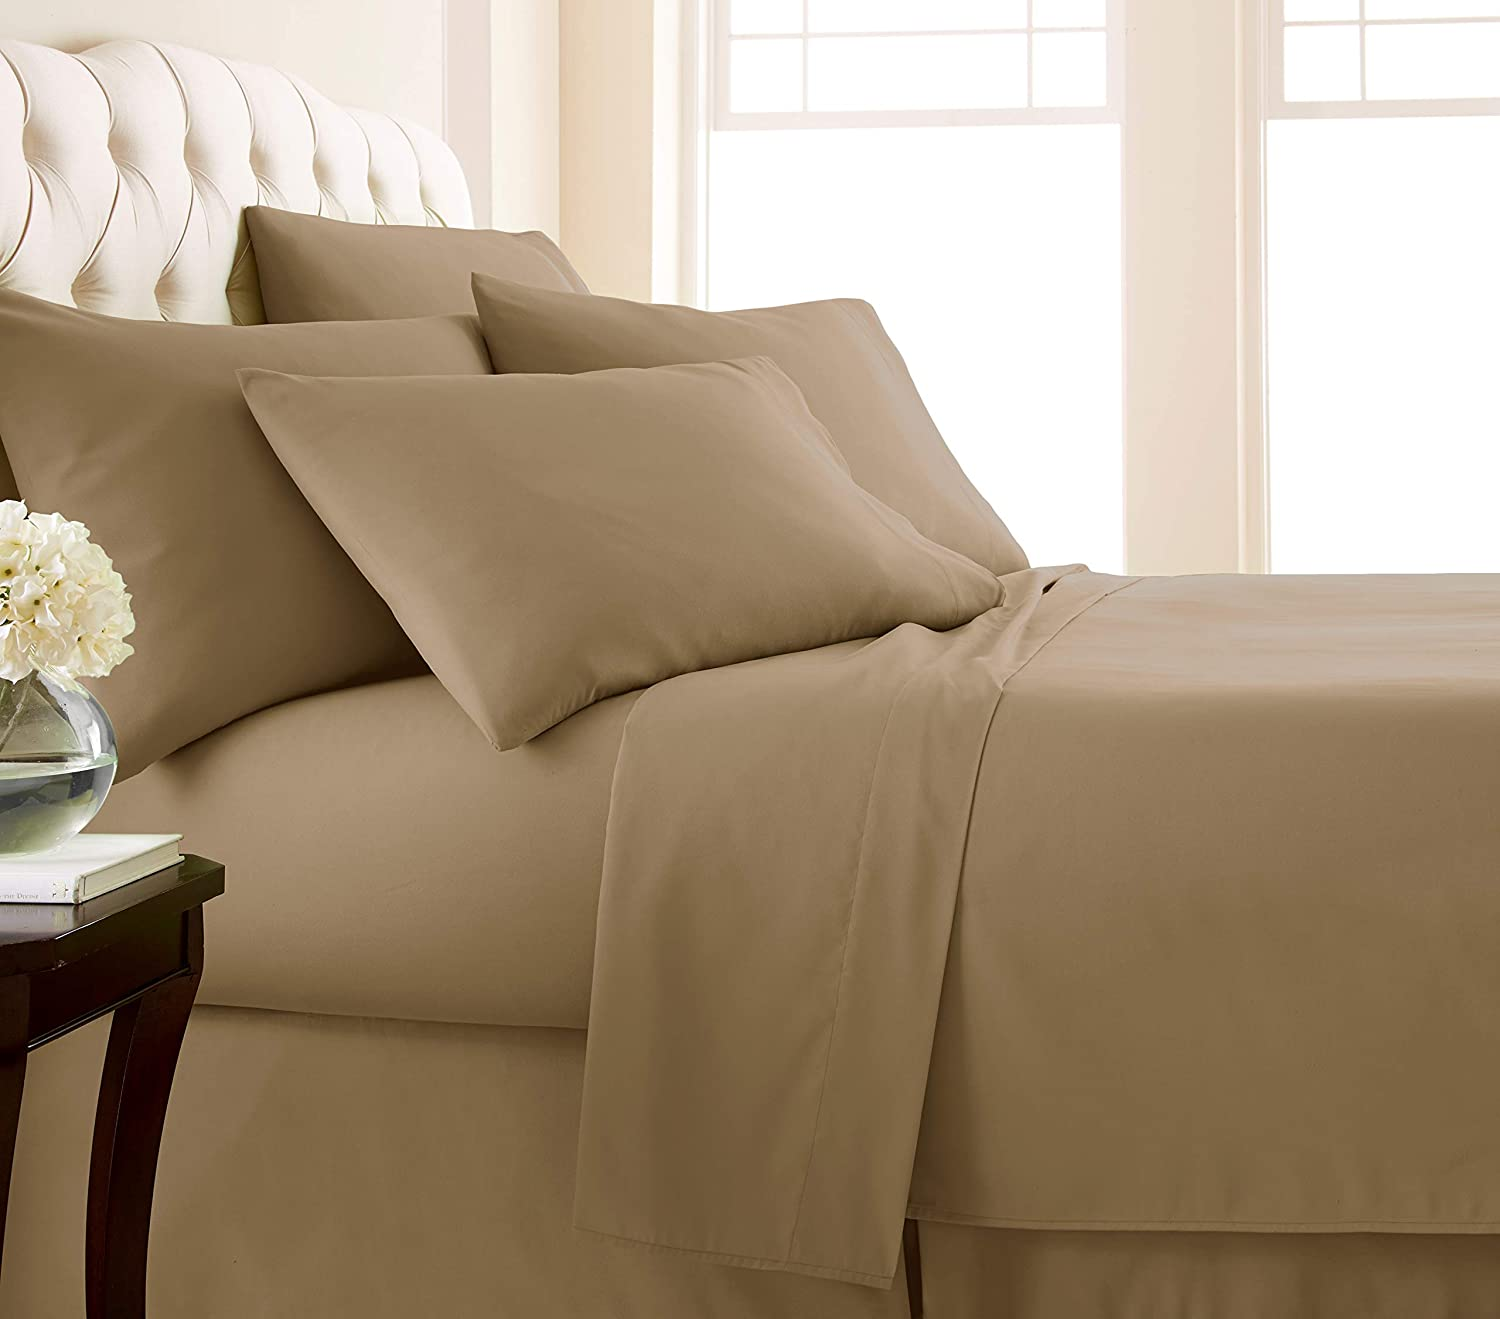 Southshore Fine Living, Inc. Vilano Springs - Premium Collection 6-Piece, 21 Inch Extra-Deep Pocket Sheet Sets, Taupe, King